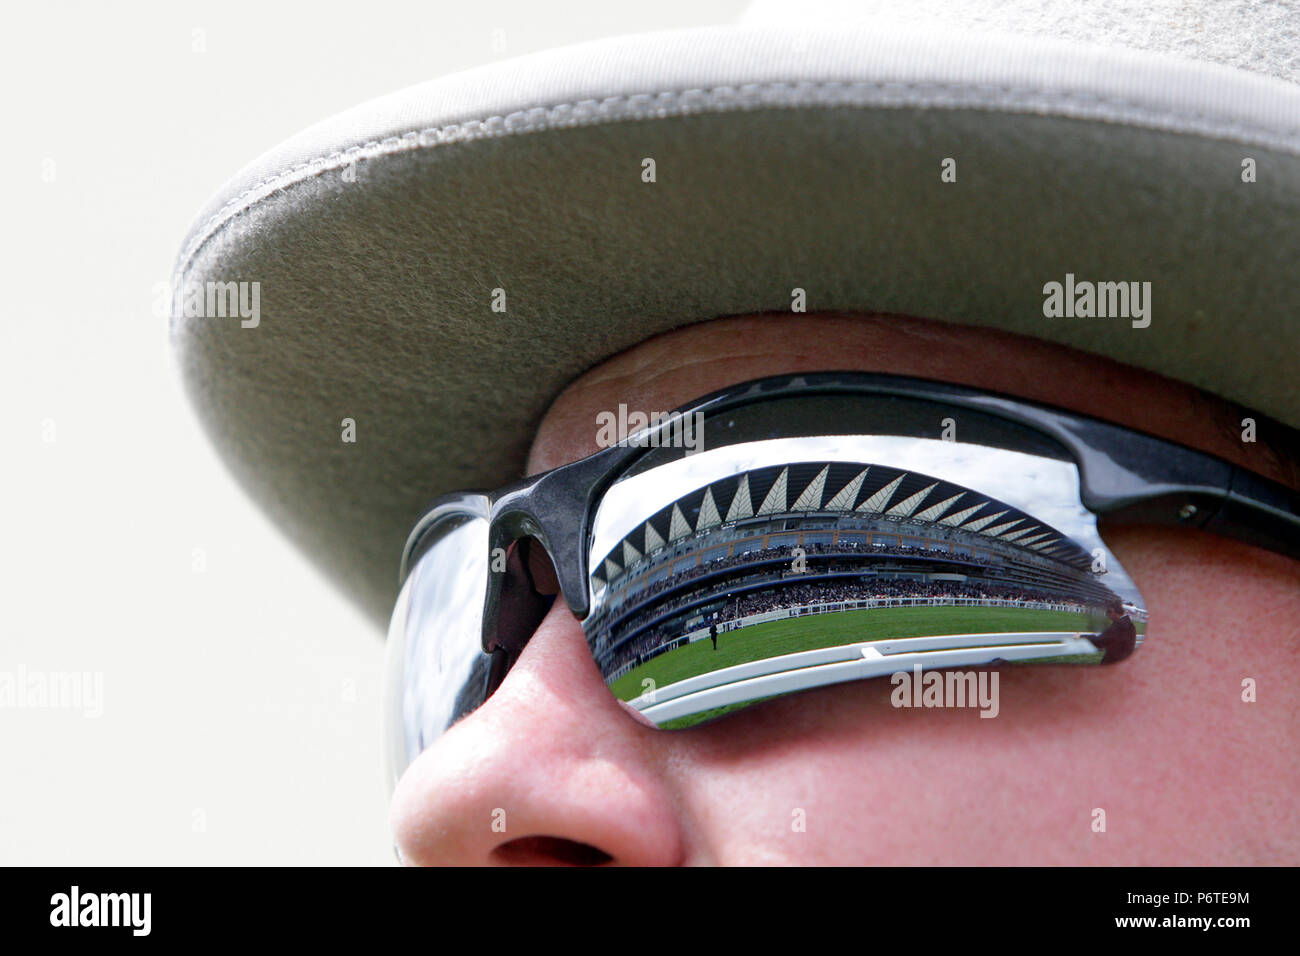 Royal Ascot, the grandstand mirror in the sunglasses of a man - Stock Image